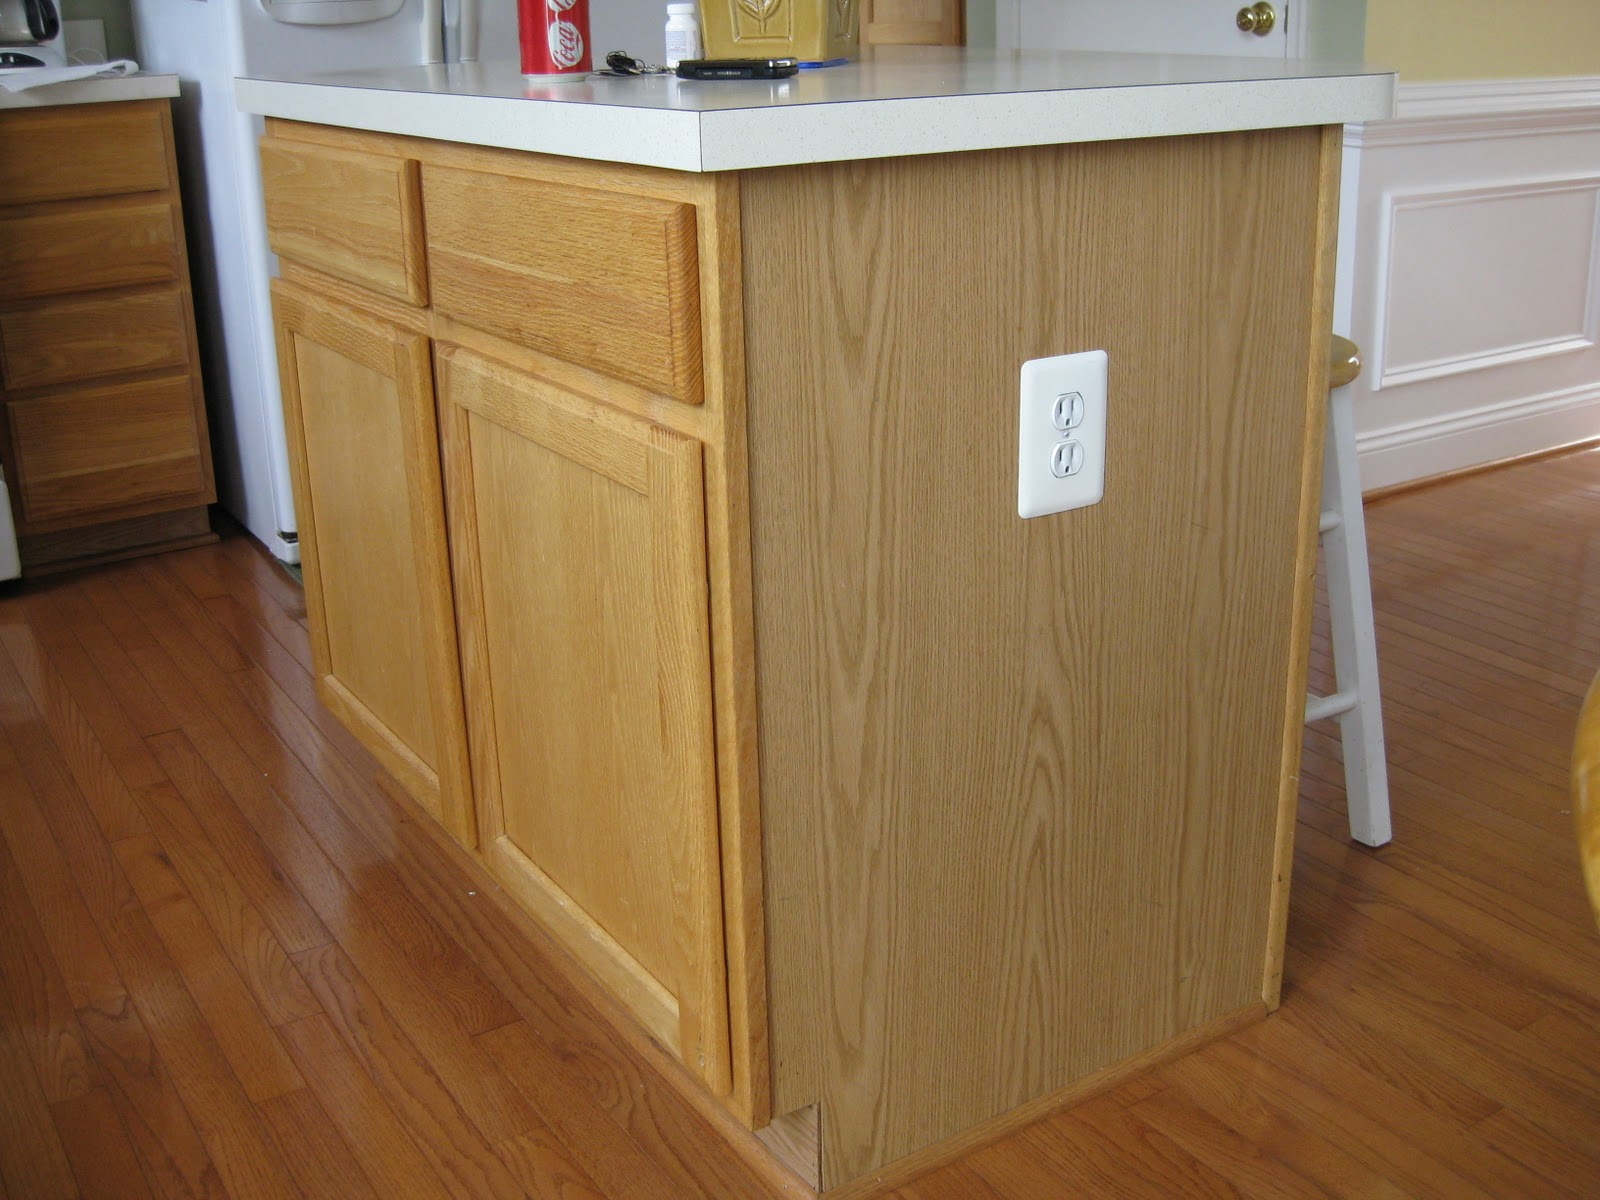 Oak Cabinet Kitchen Island Transformed   Makeover